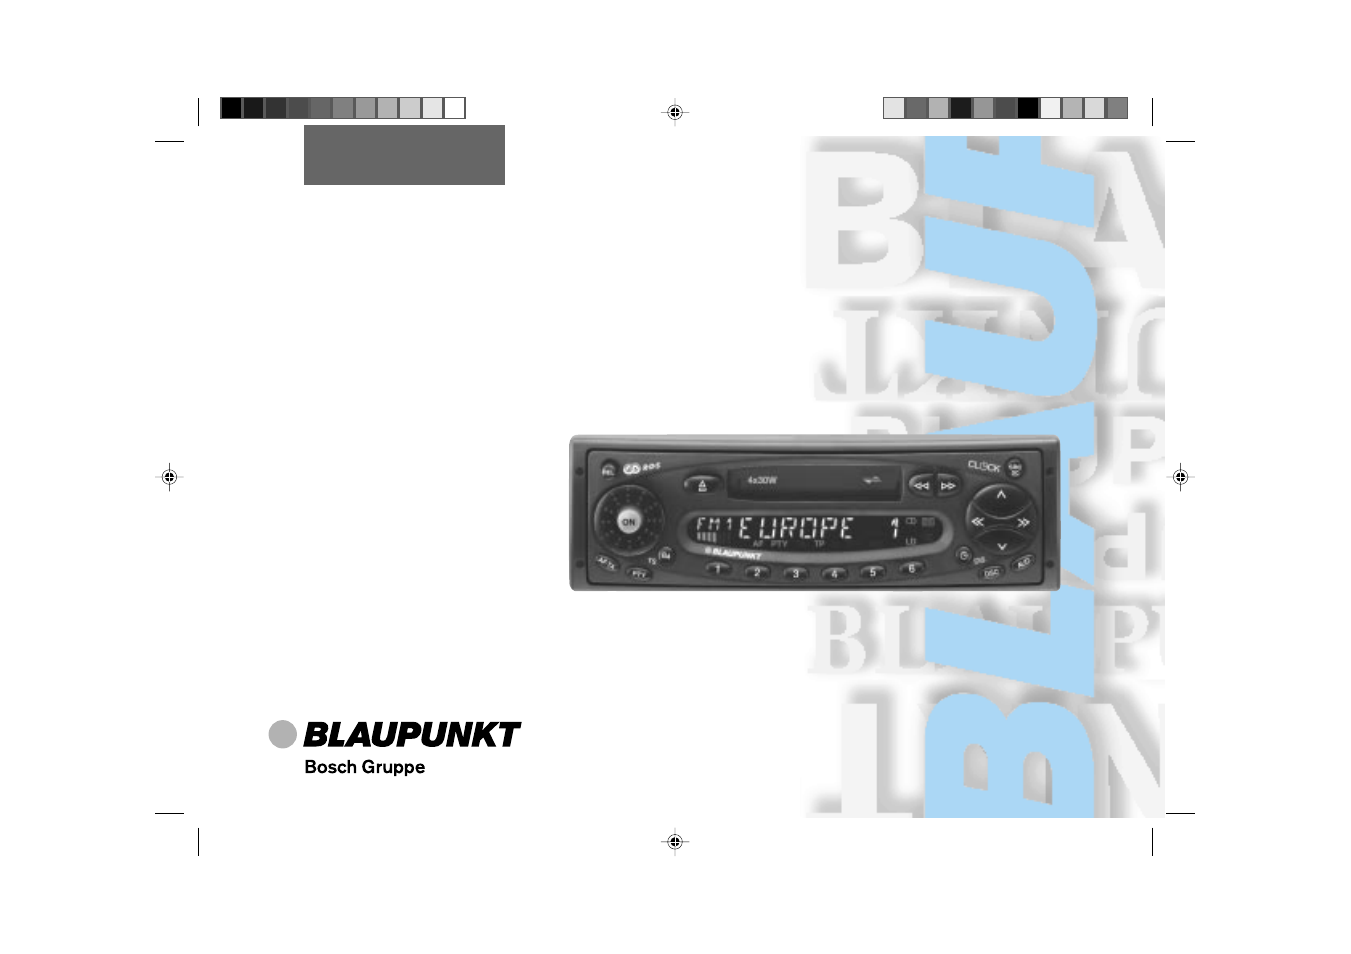 Blaupunkt Wiring Harness Diagram Page 5 And Schematics Dresden Rcr 128 User Manual 18 Pages Also For Boston Rh Manuair Com